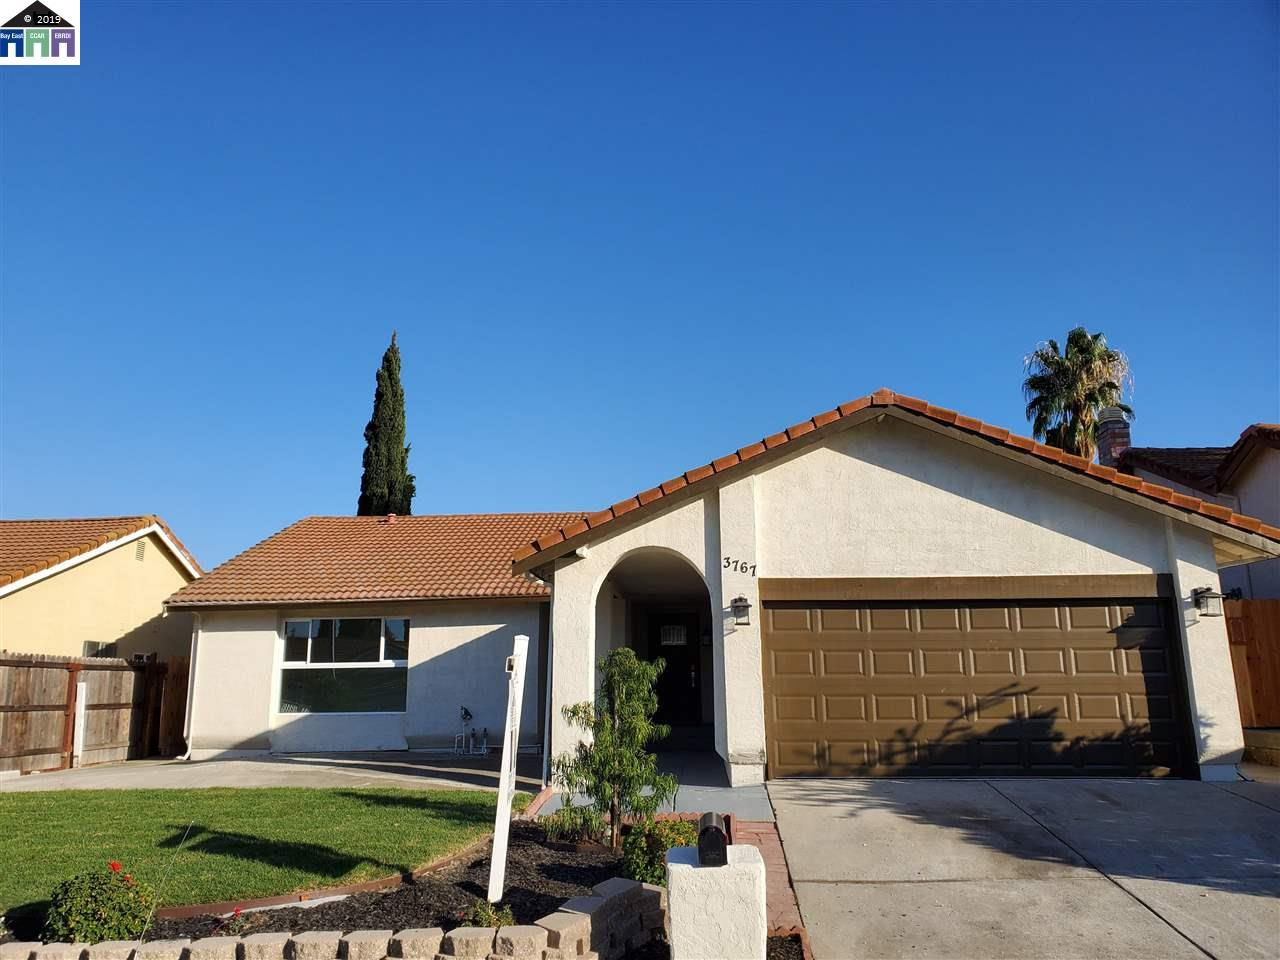 3767 Park Place Dr., PITTSBURG, CA 94565